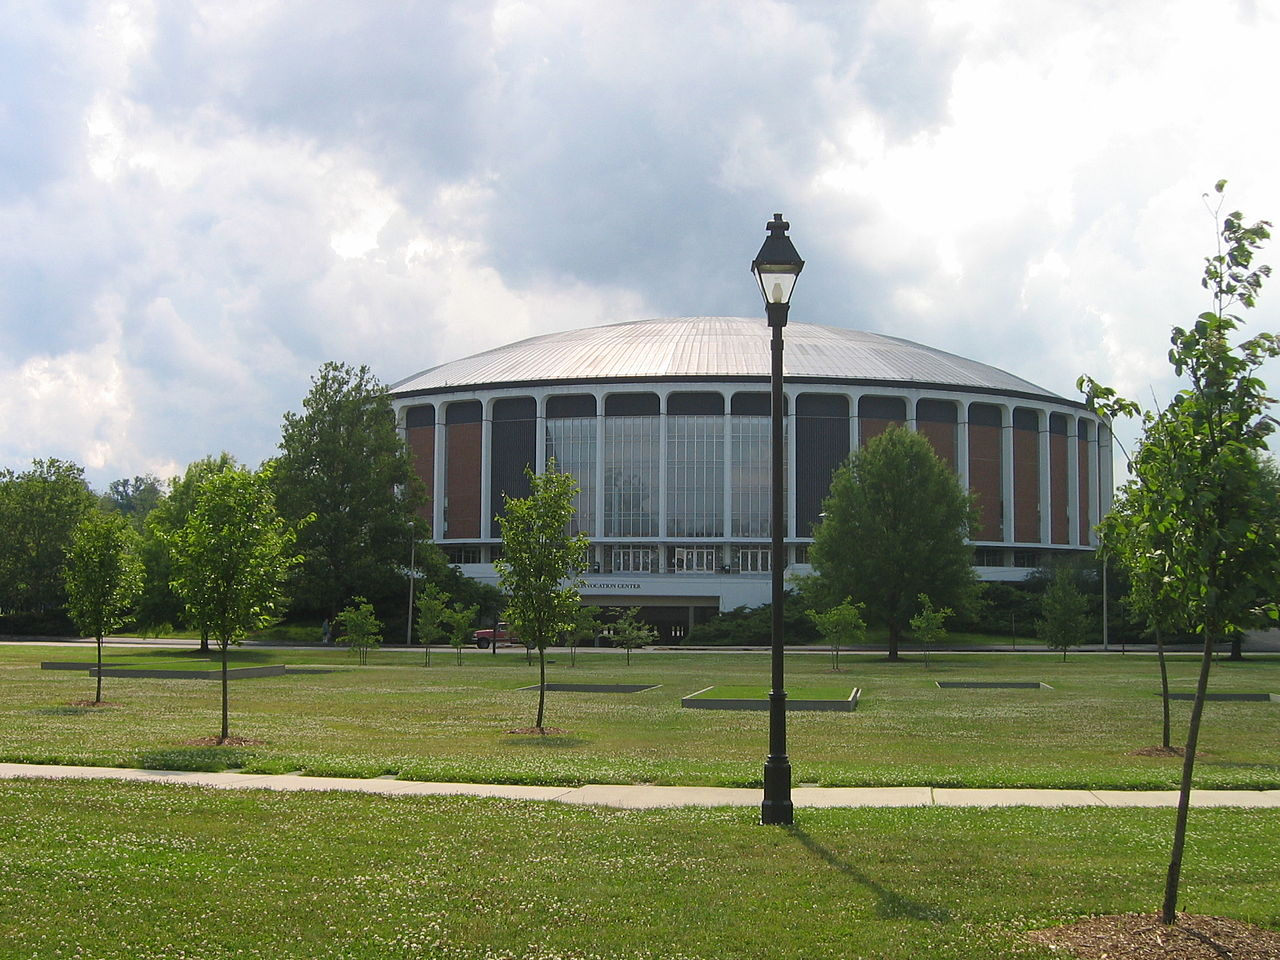 Convocation Center at Ohio University - Courtesy Greenstrat via Wikimedia Commons